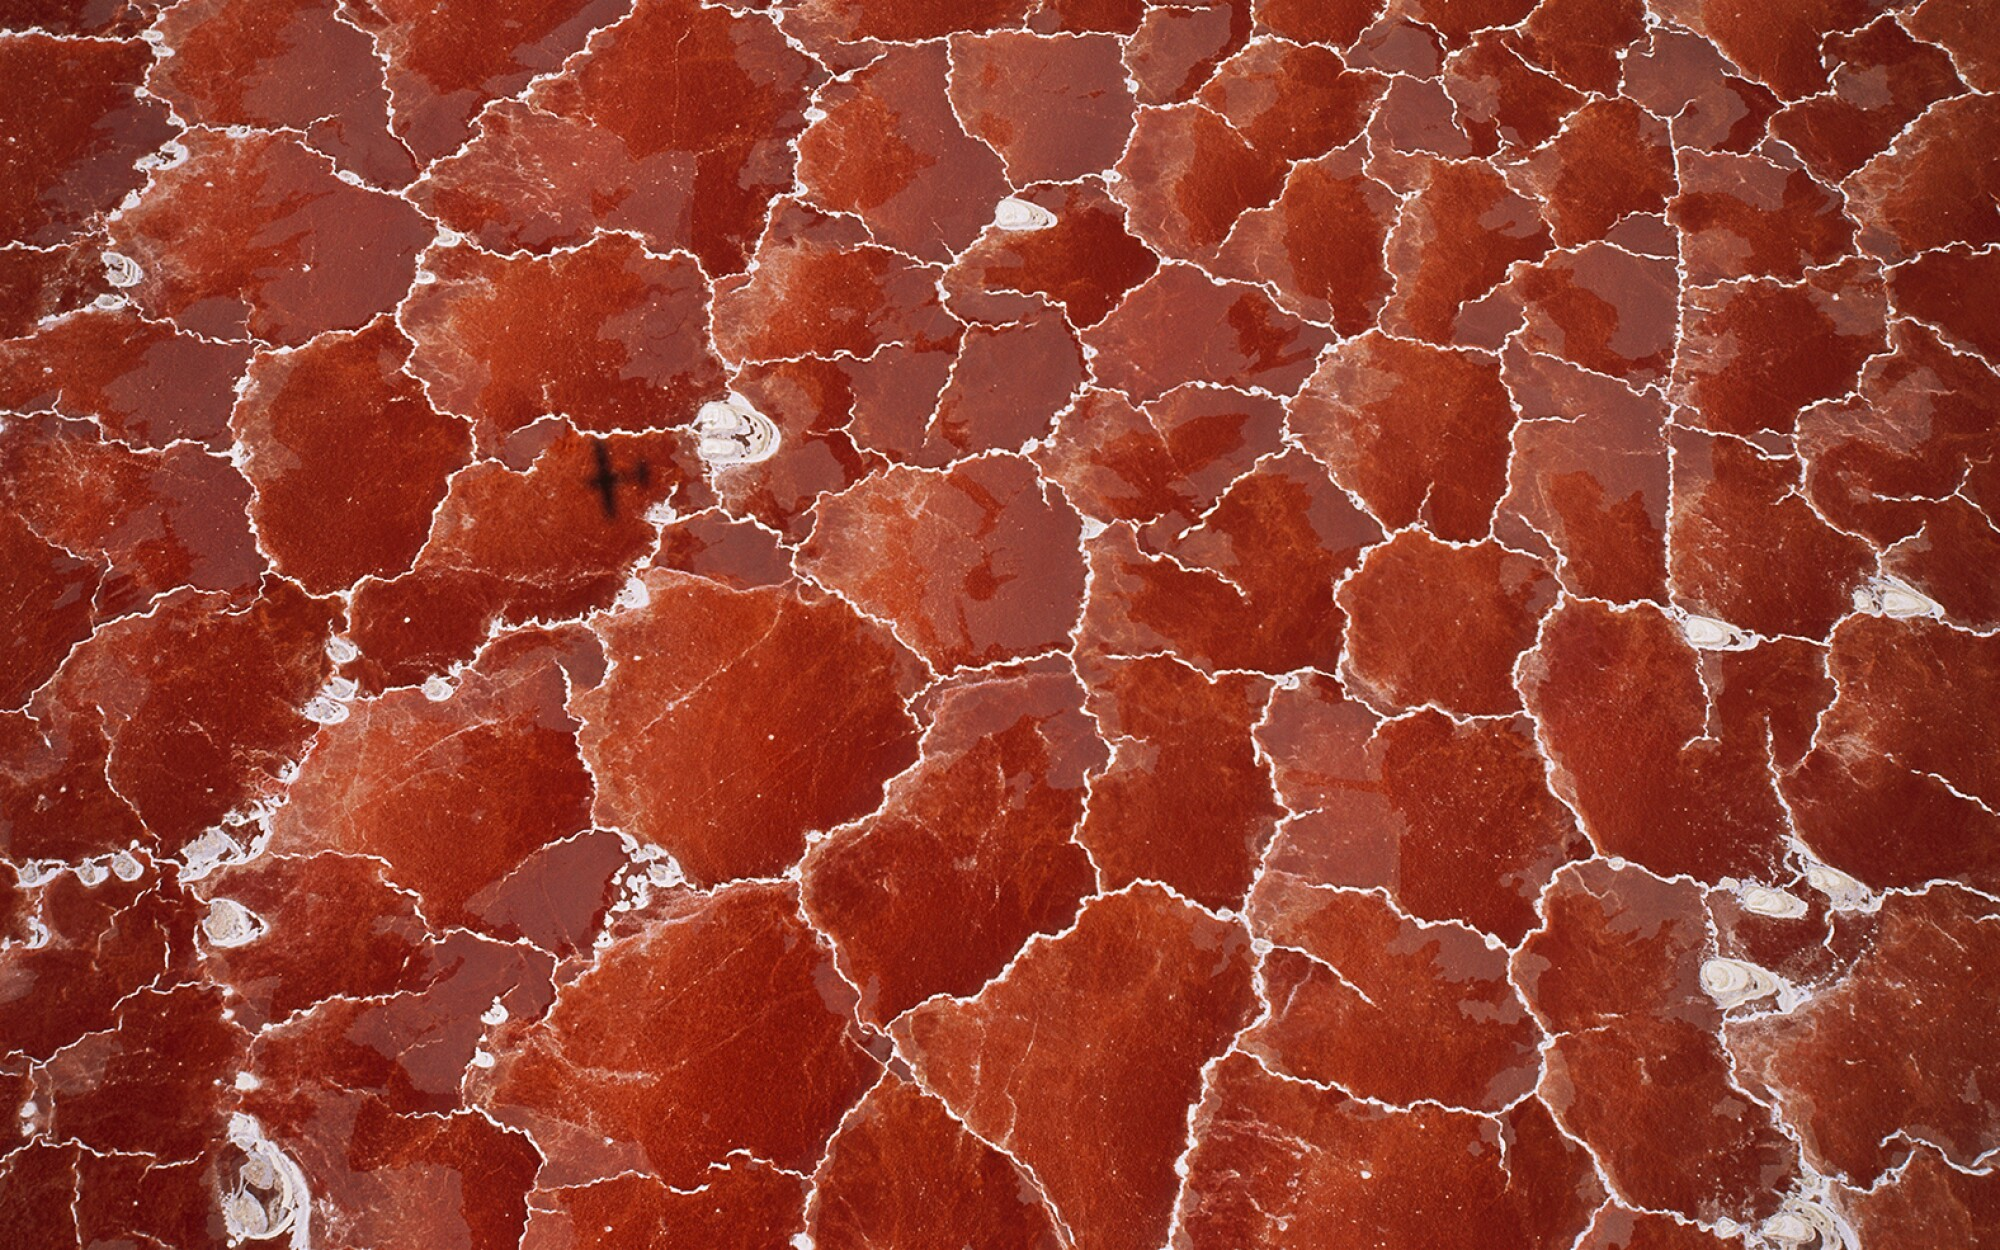 Salt-loving algae gives a red color to the hyper-saline waters of Lake Natron in the Great Rift Valley on the border between Tanzania and Kenya.  The lake has an unusual mineral content that is leached from the surrounding volcanoes.  The temperatures in the salty mud can reach 50 degrees Celsius (120 degrees Fahrenheit), and depending on rainfall, the alkalinity can reach a pH of 9 to 10.5 (almost as alkaline as straight ammonia).